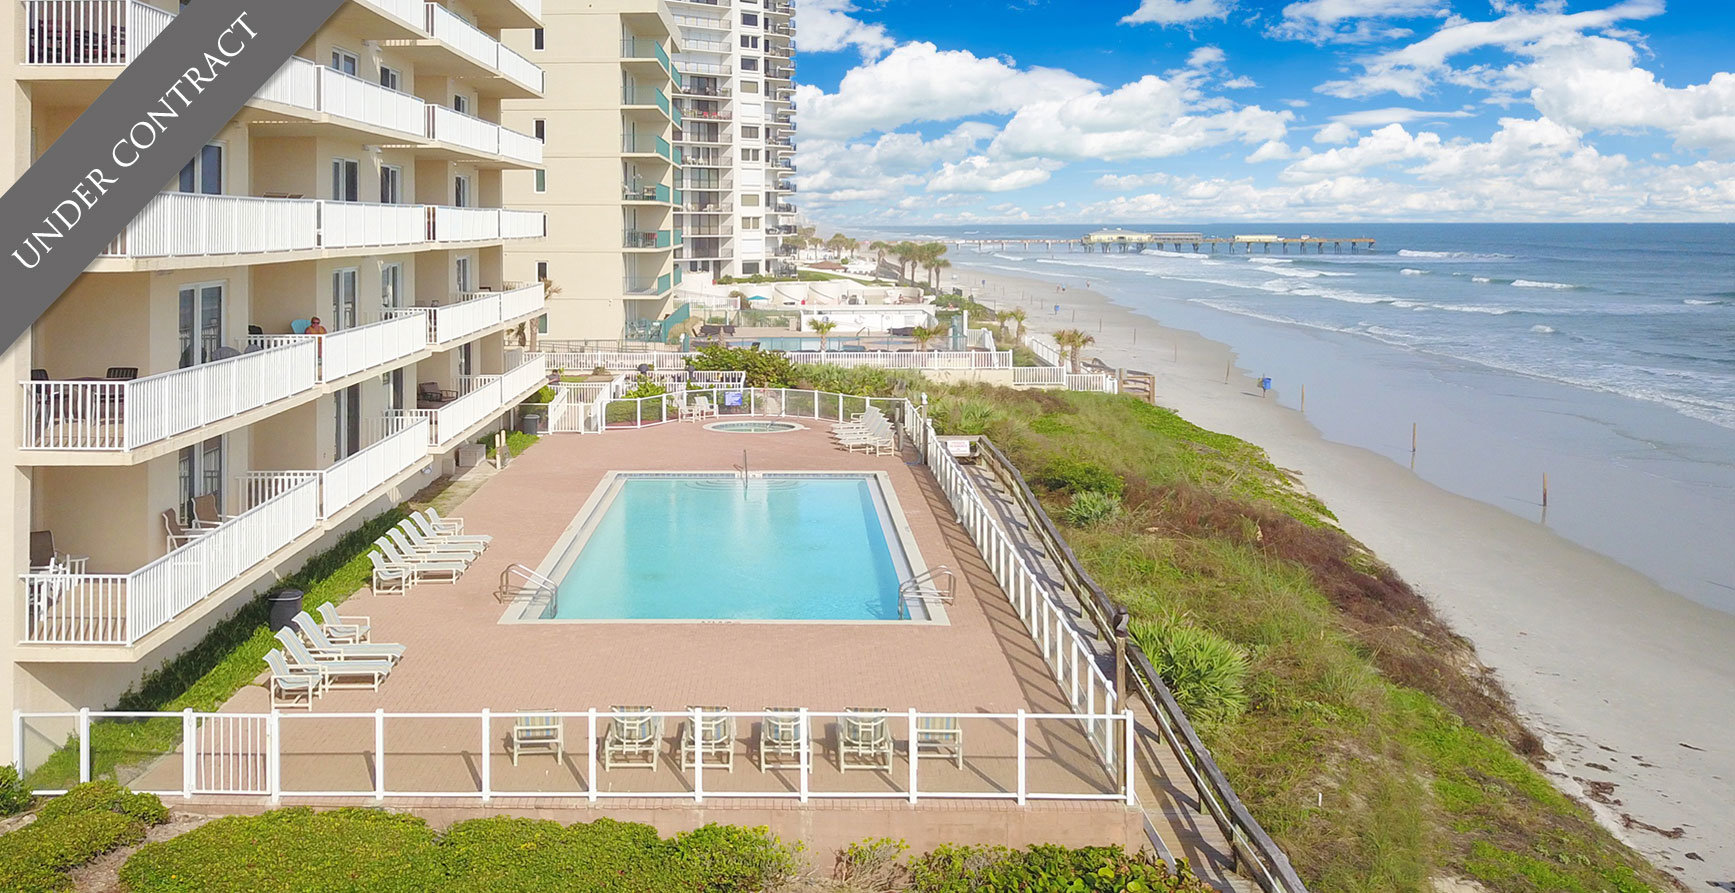 Sanibel oceanfront condos For Sale at 3799 S Atlantic Ave Daytona Beach  Shores The LUXE Group 386-299-4043